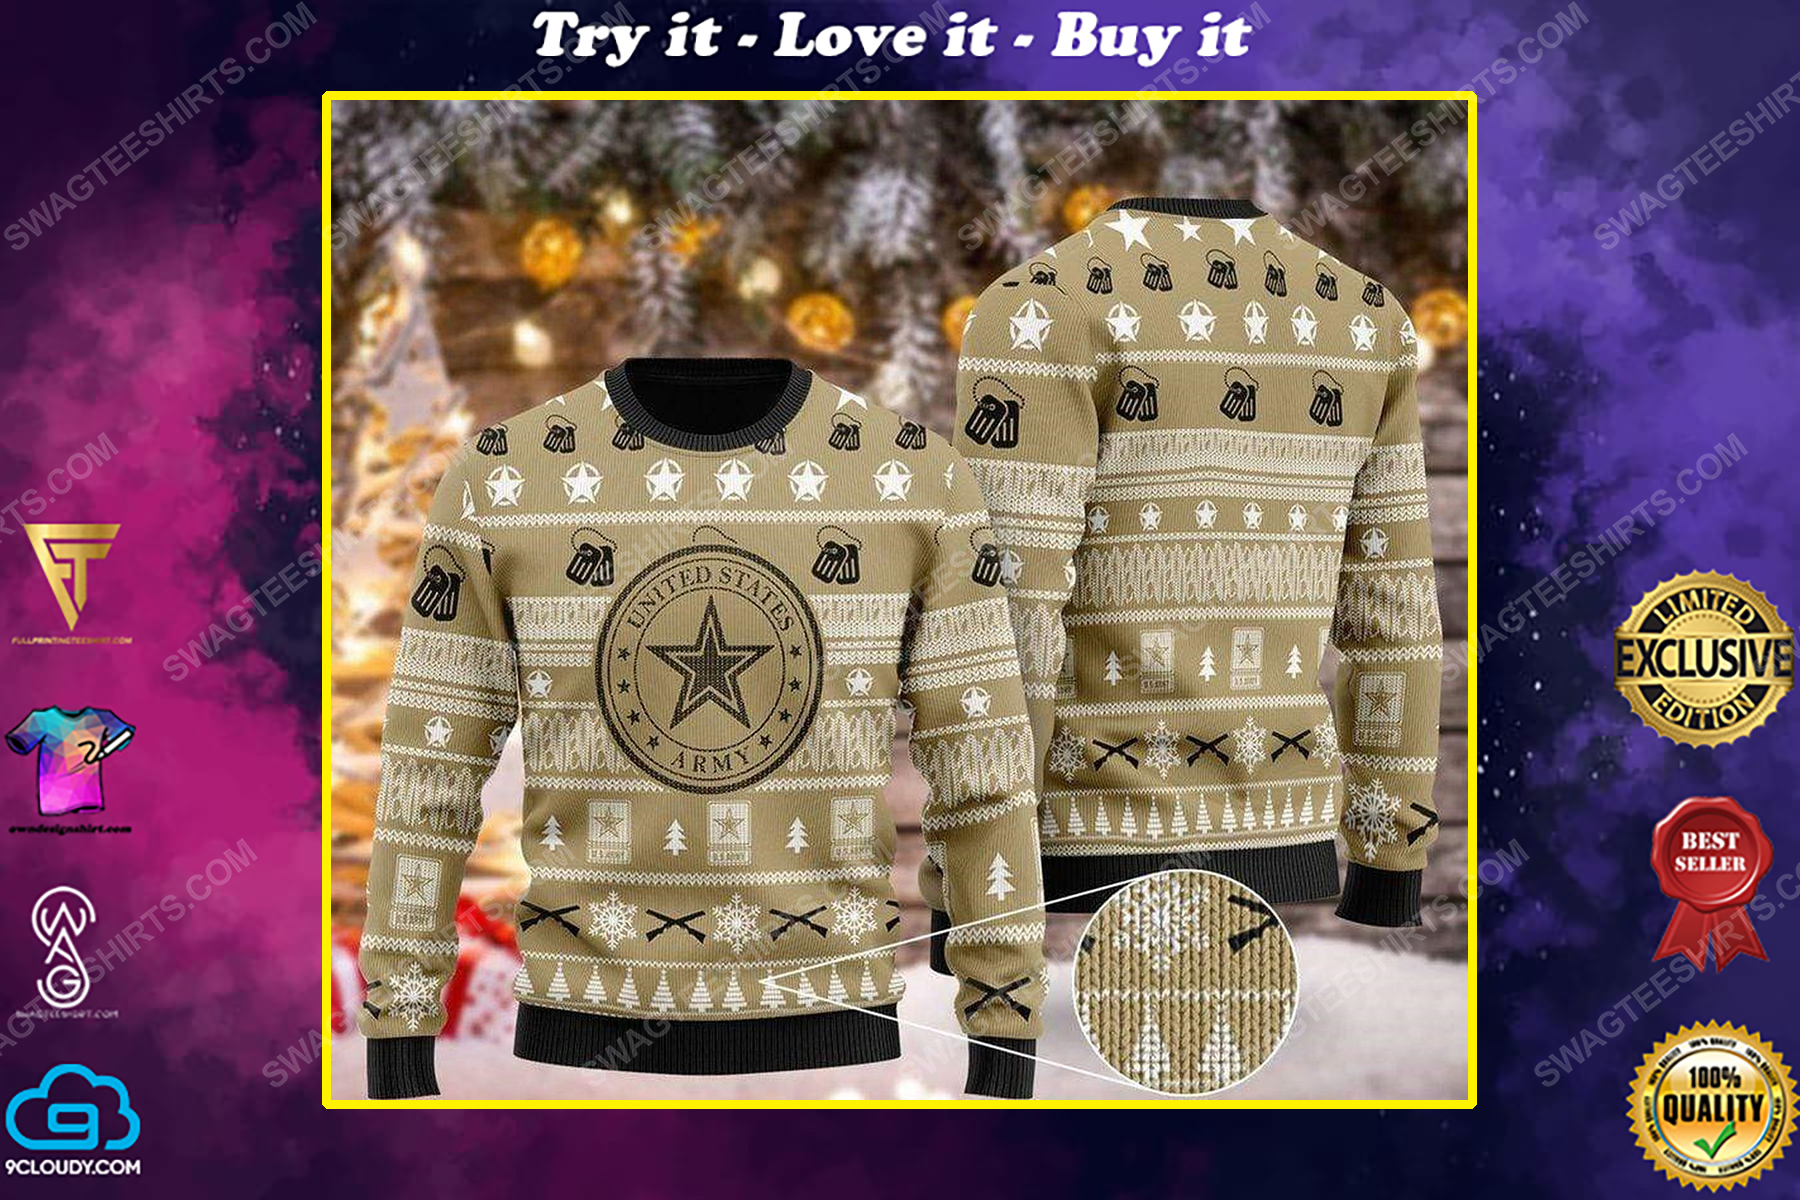 United states army all over print ugly christmas sweater